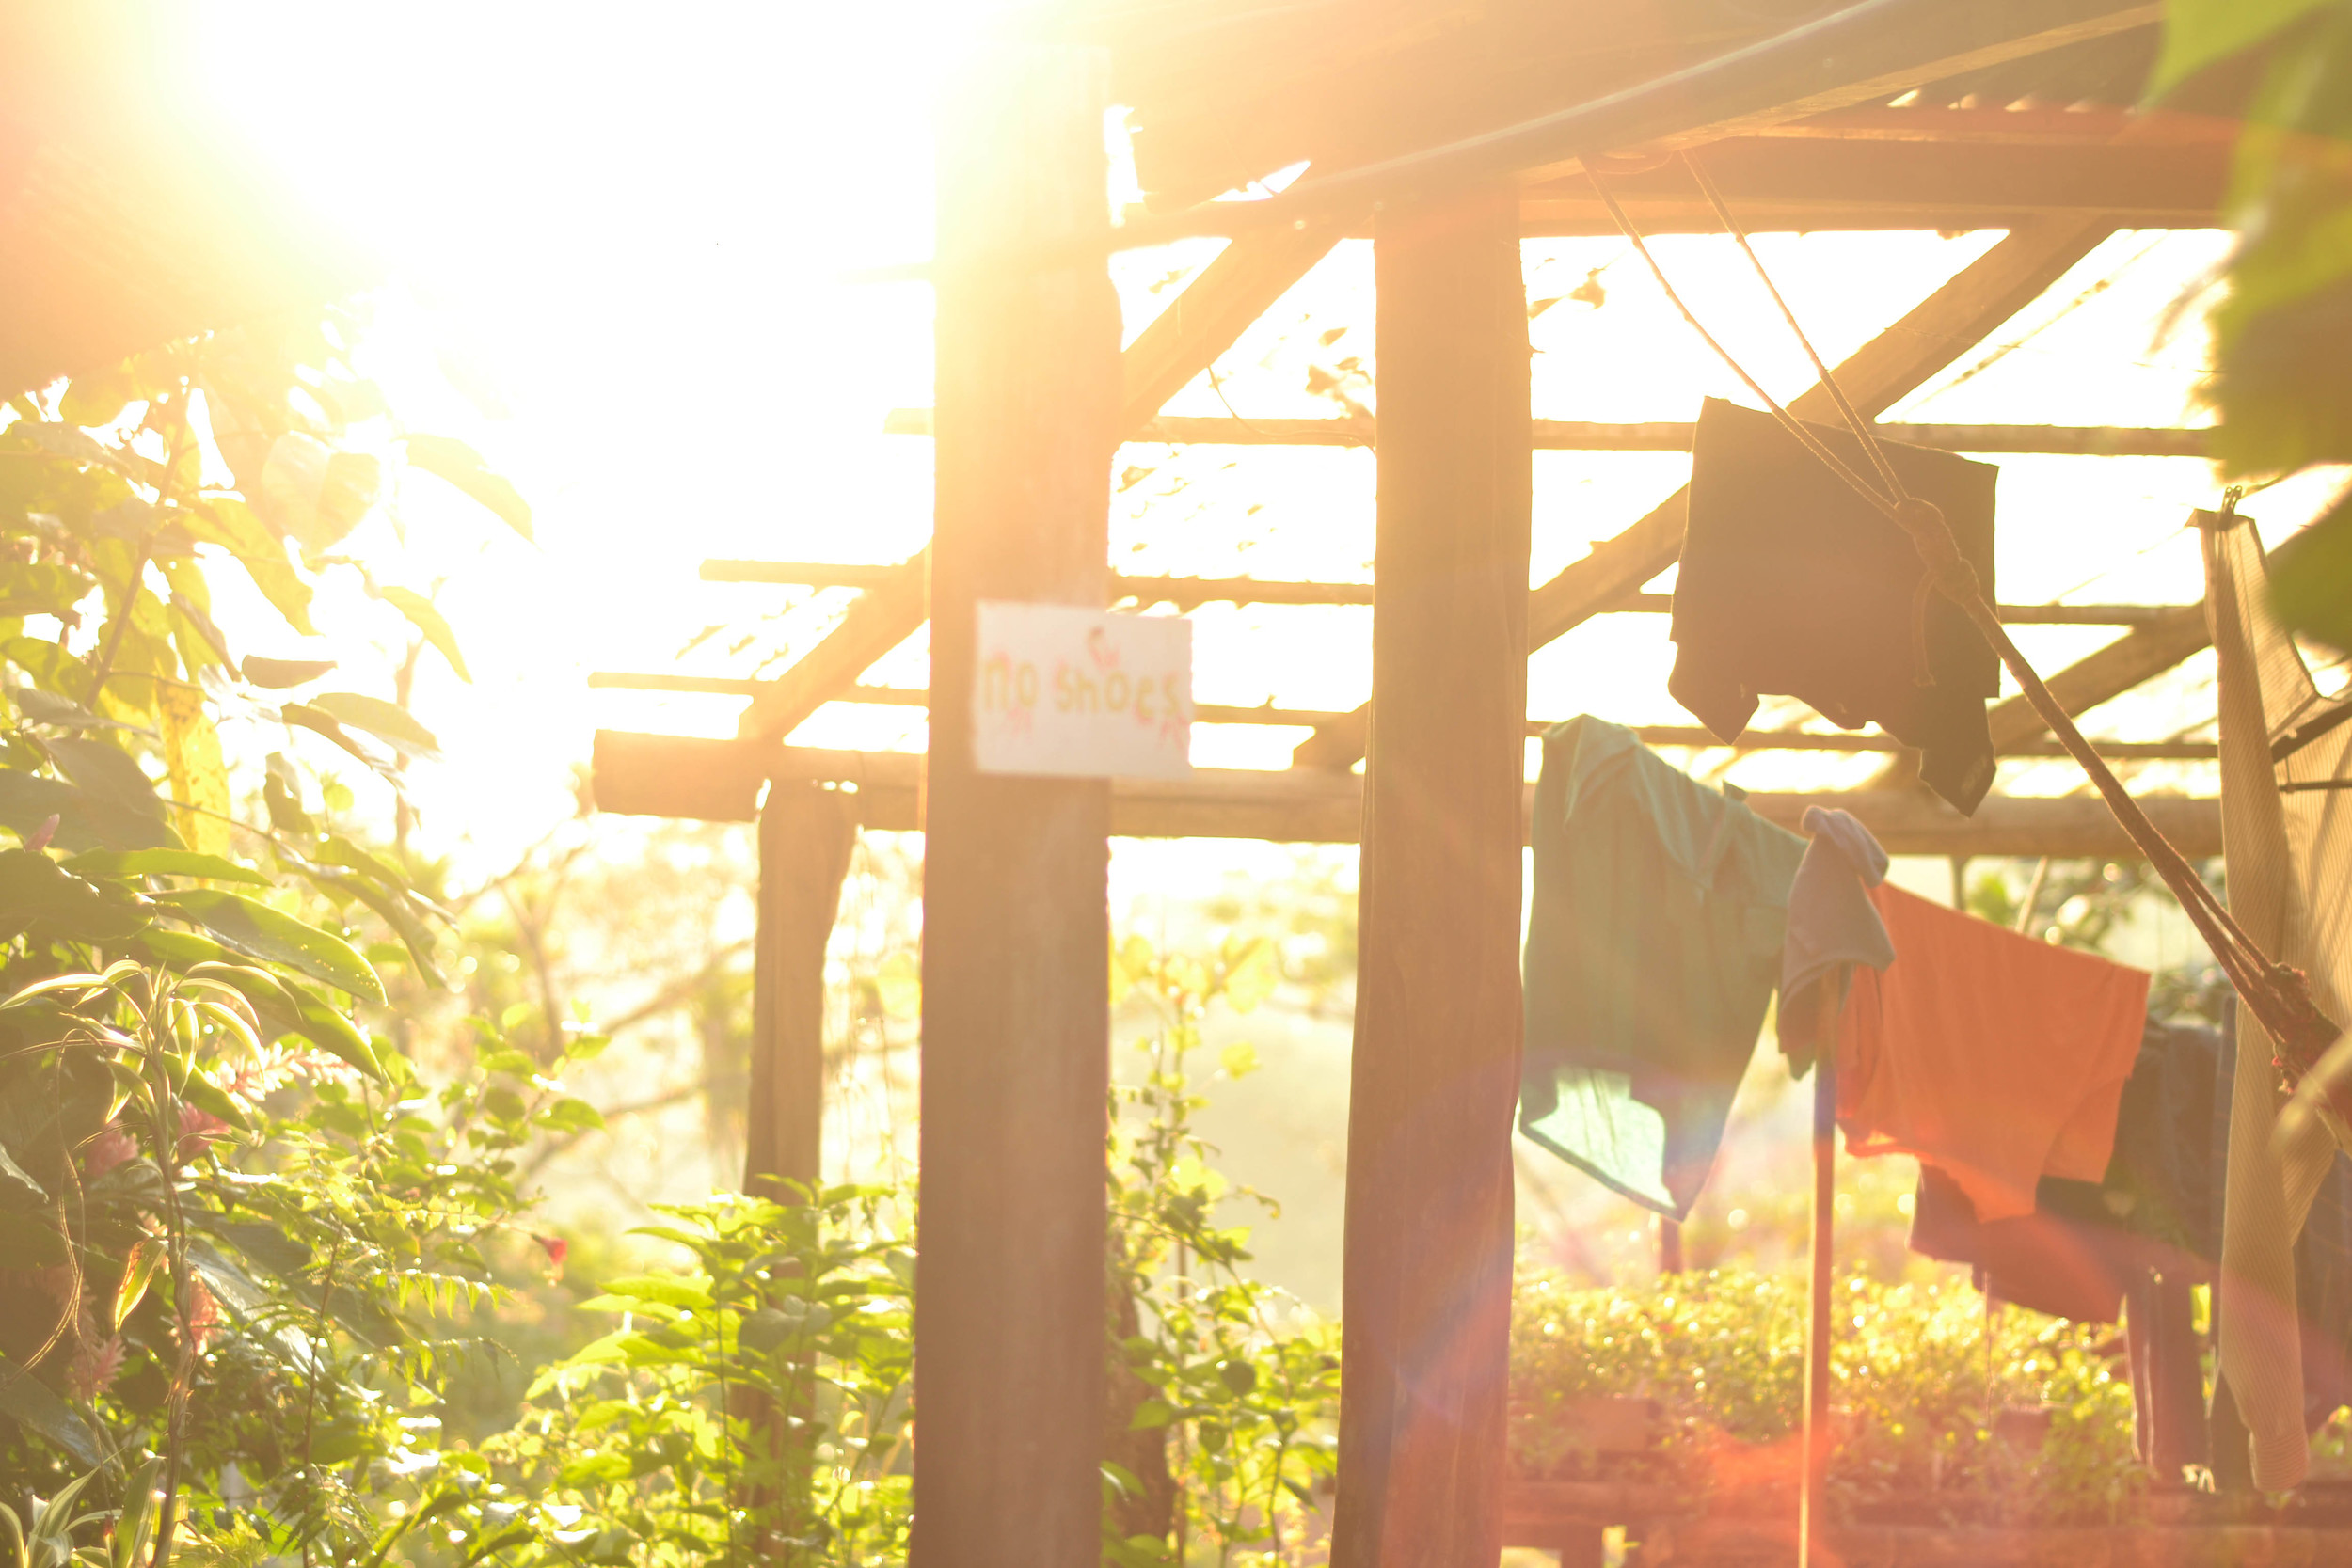 Clothes out to dry in the morning sun